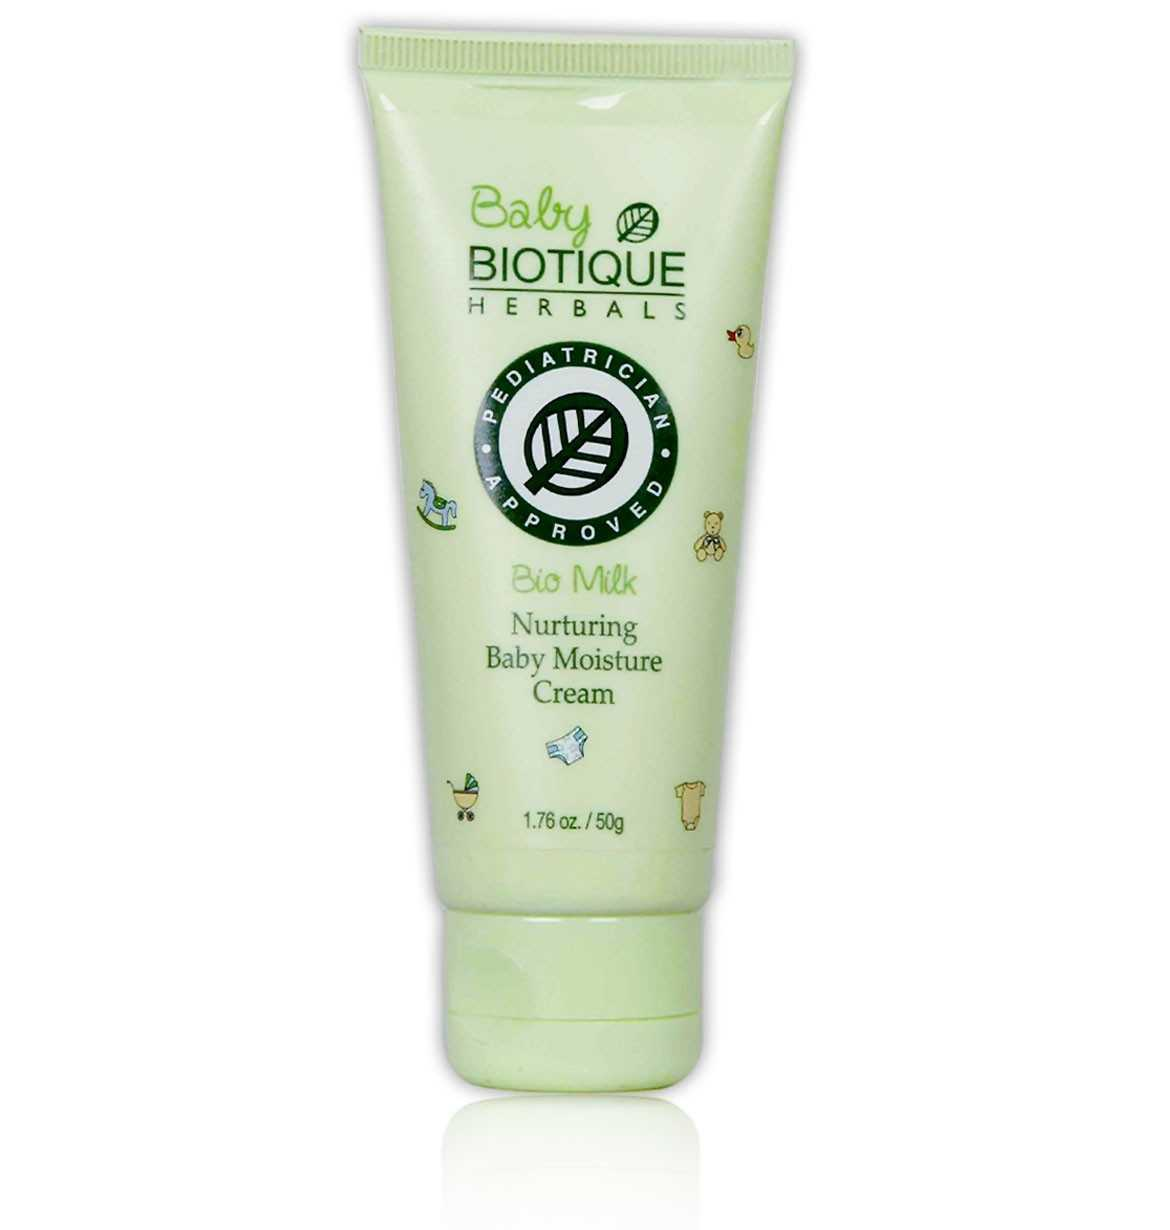 Buy Biotique Bio Milk Nurtuting Baby Moisture Cream Online FR